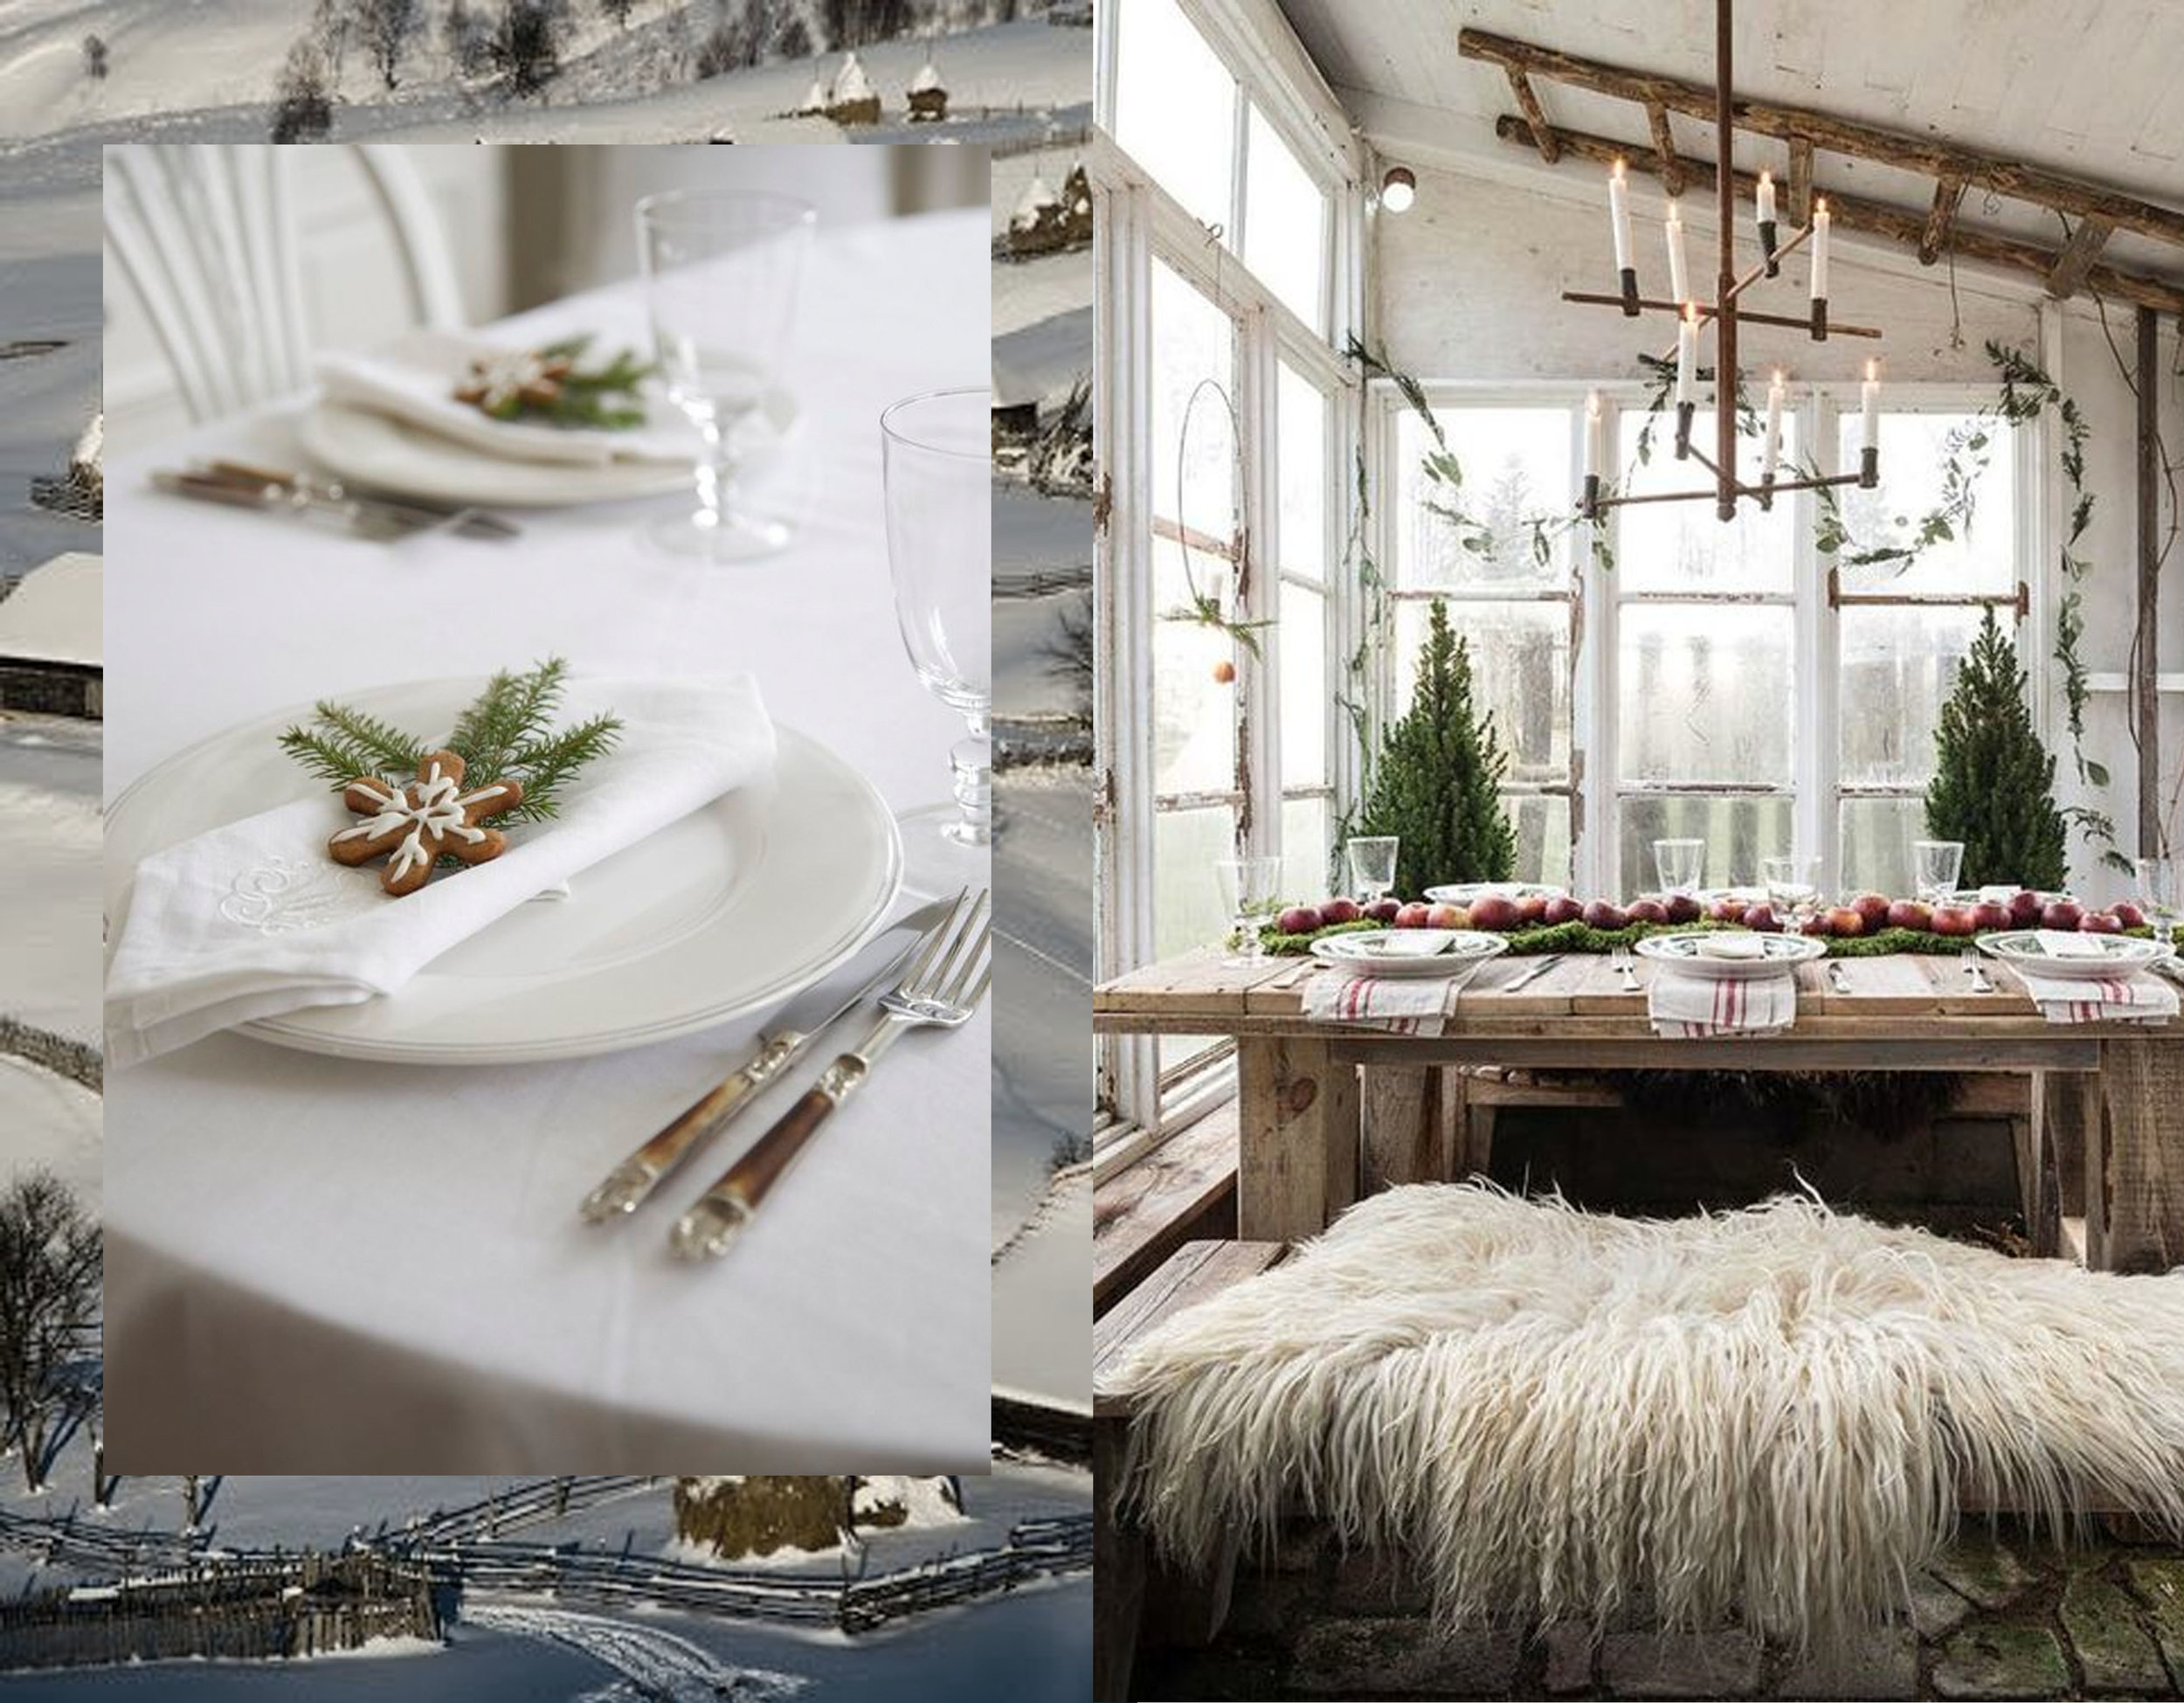 table setting via  Livs Lyst  - decorated table via  My Lovely Things